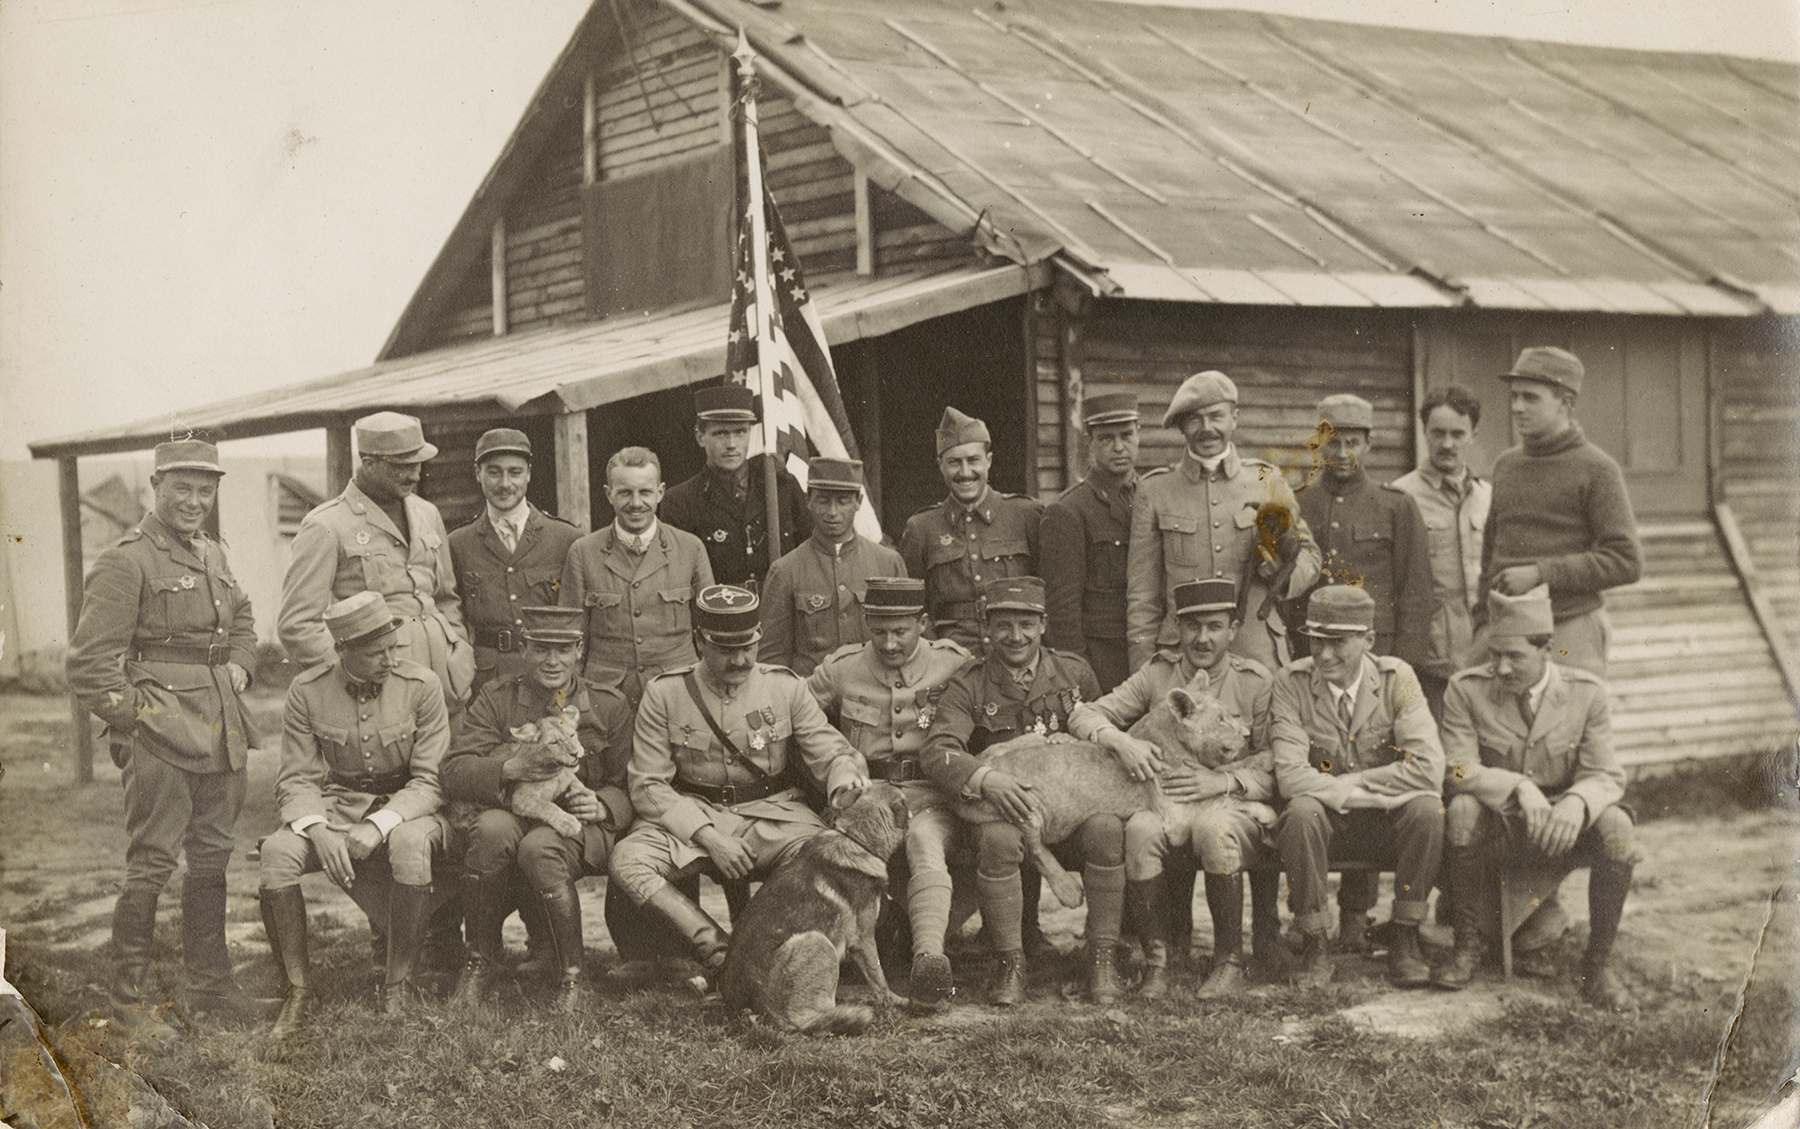 Members of the Escadrille Lafayette, along with their mascots, lions named Whiskey and Soda (from MS-502 Raoul Lufbery Collection)